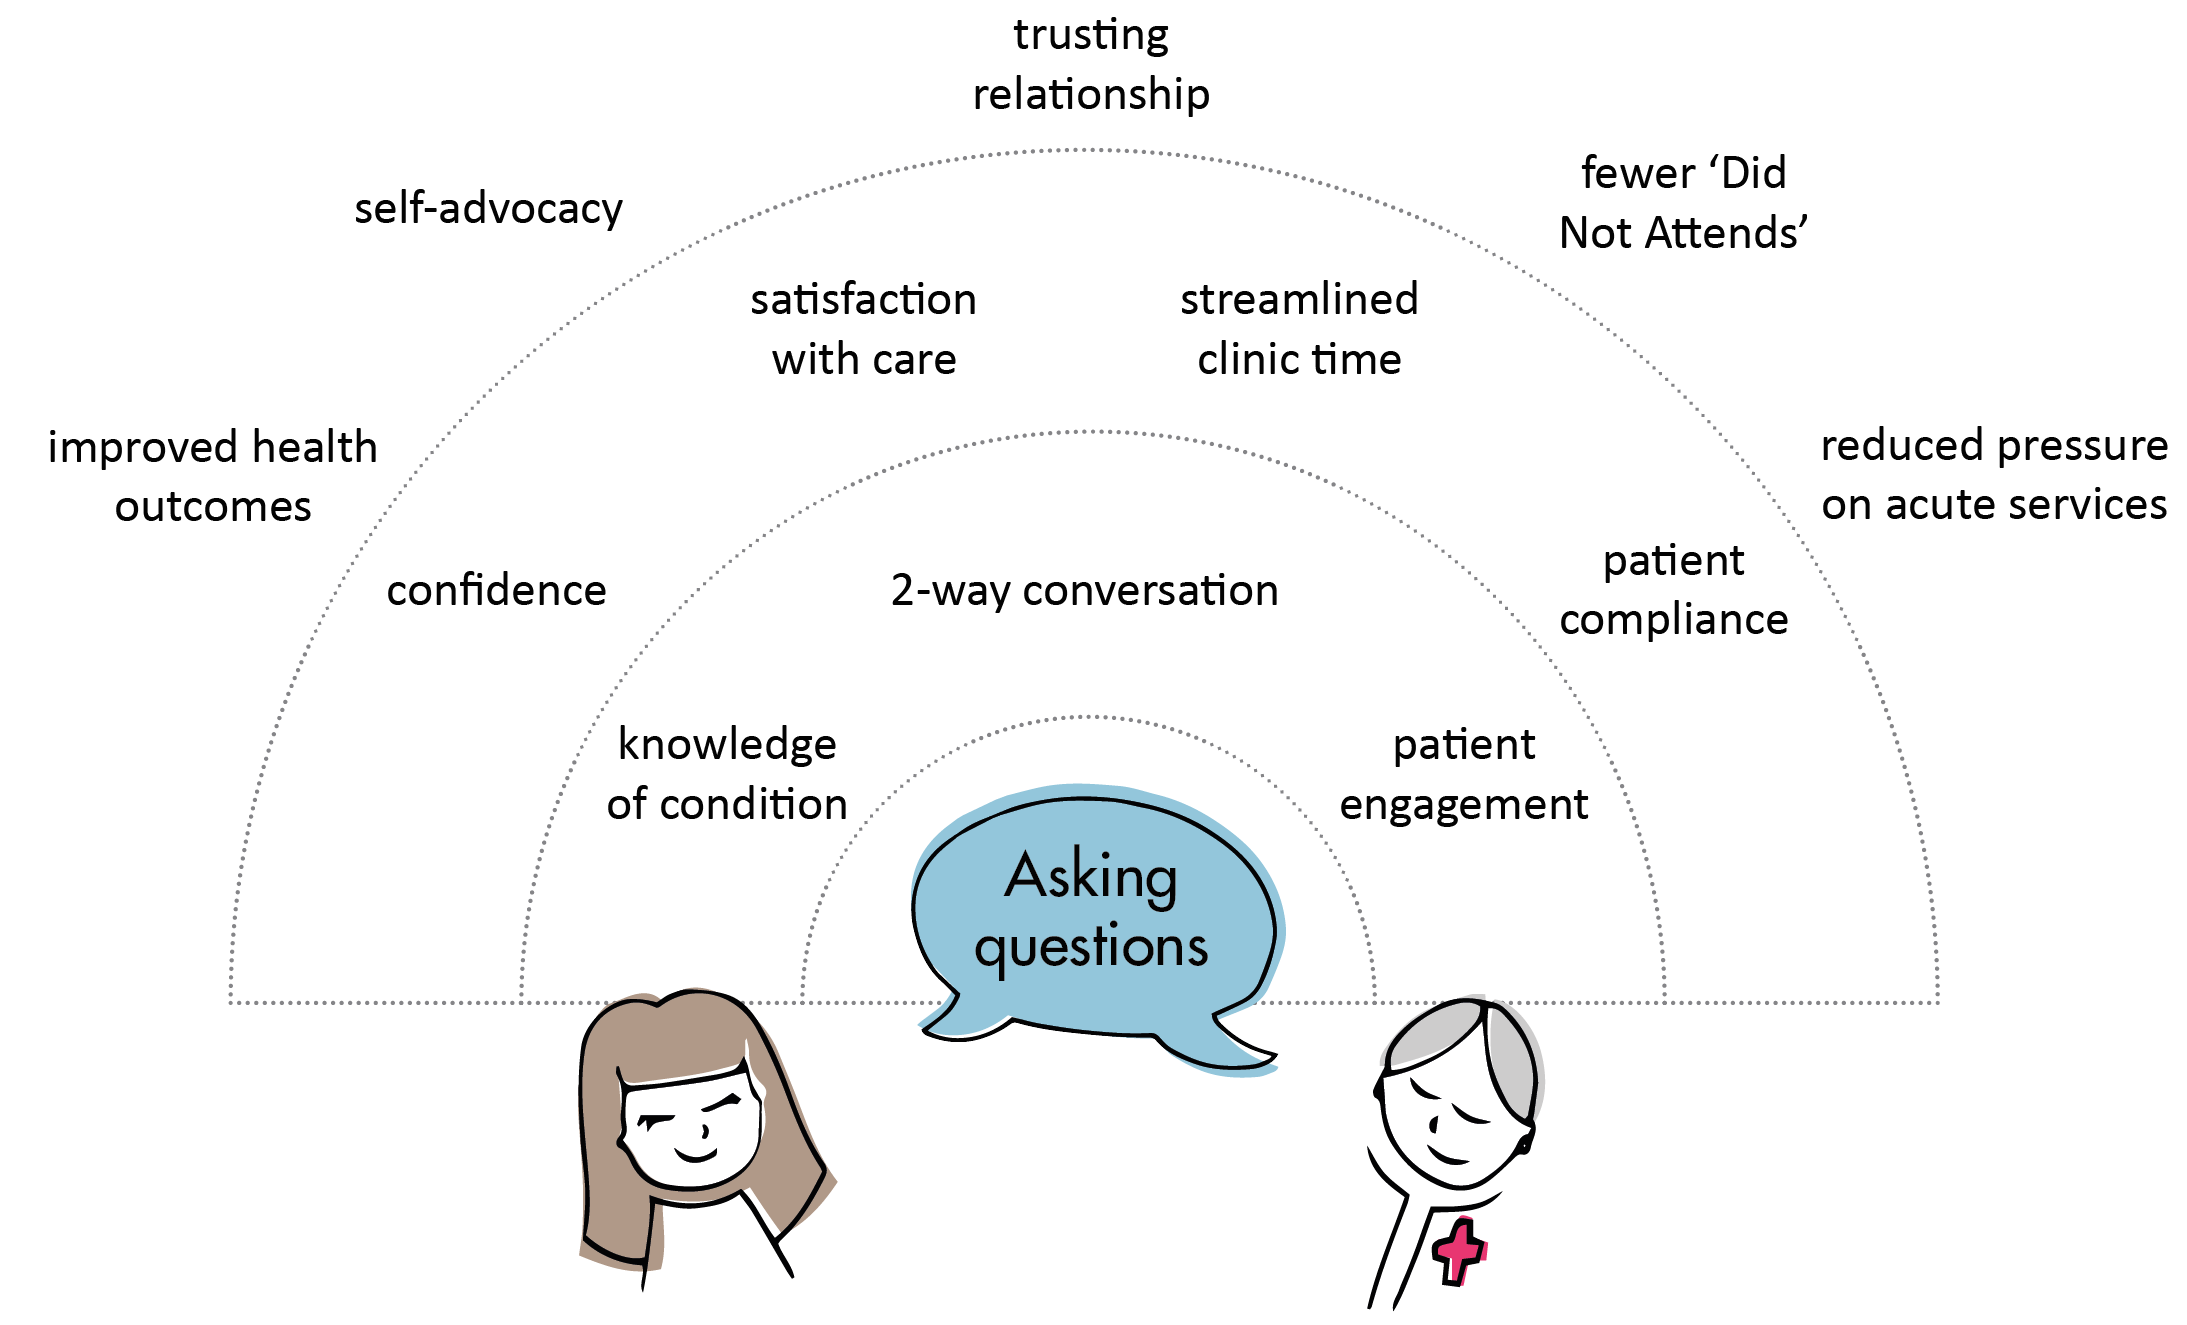 The working hypothesis: enabling people to ask questions will have positive outcomes for both the patient and the hospital